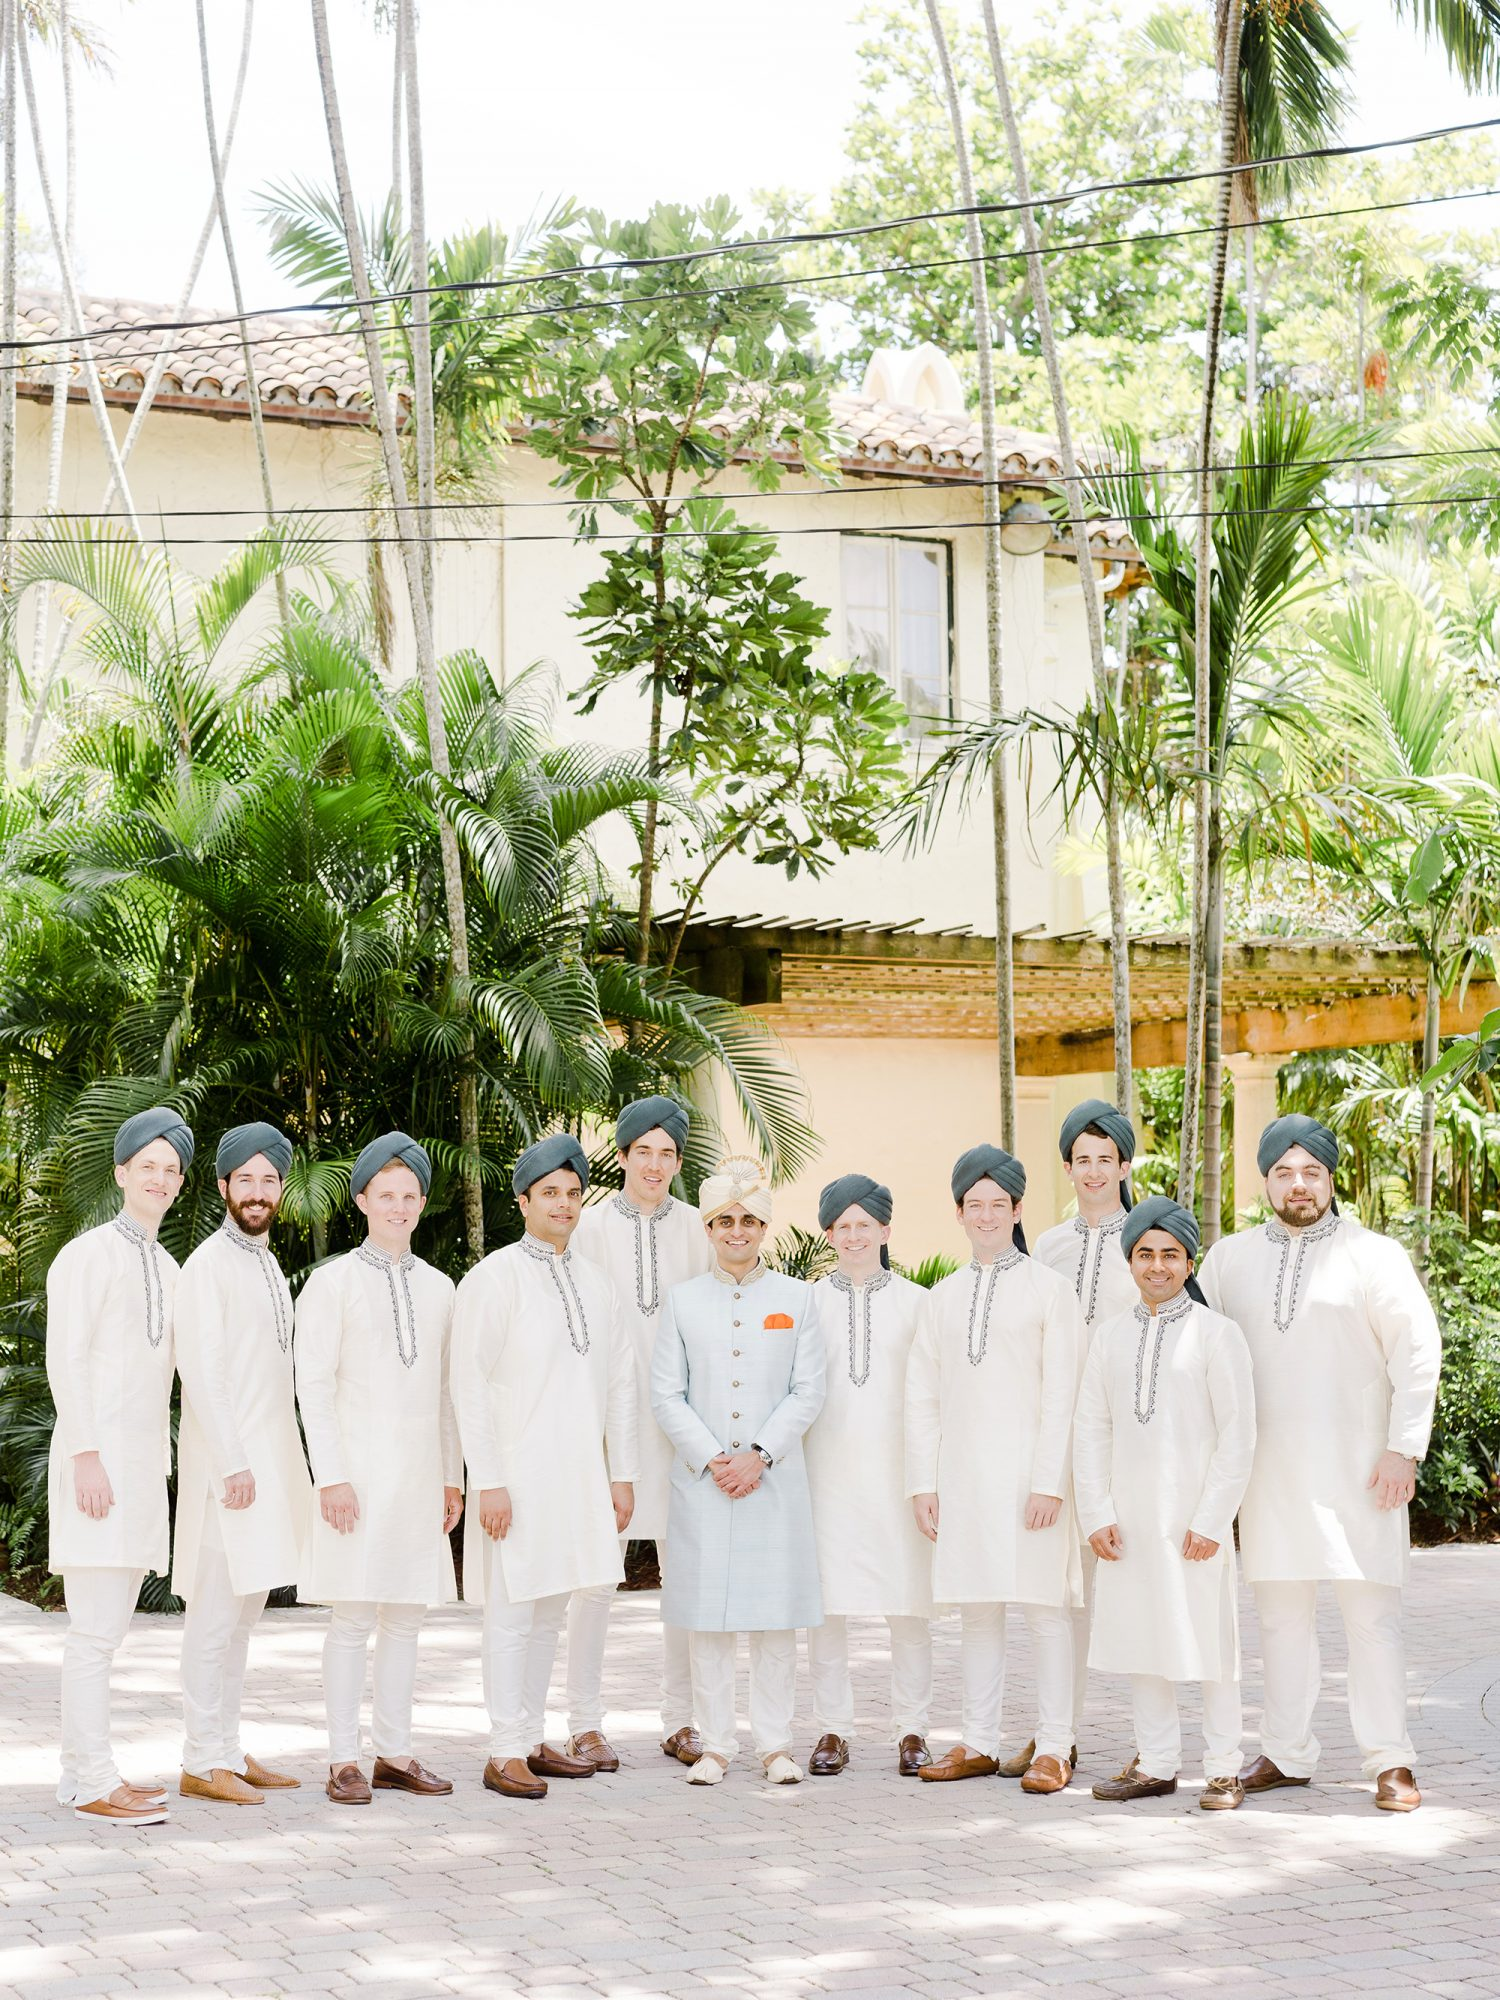 anuja nikhil wedding groomsmen